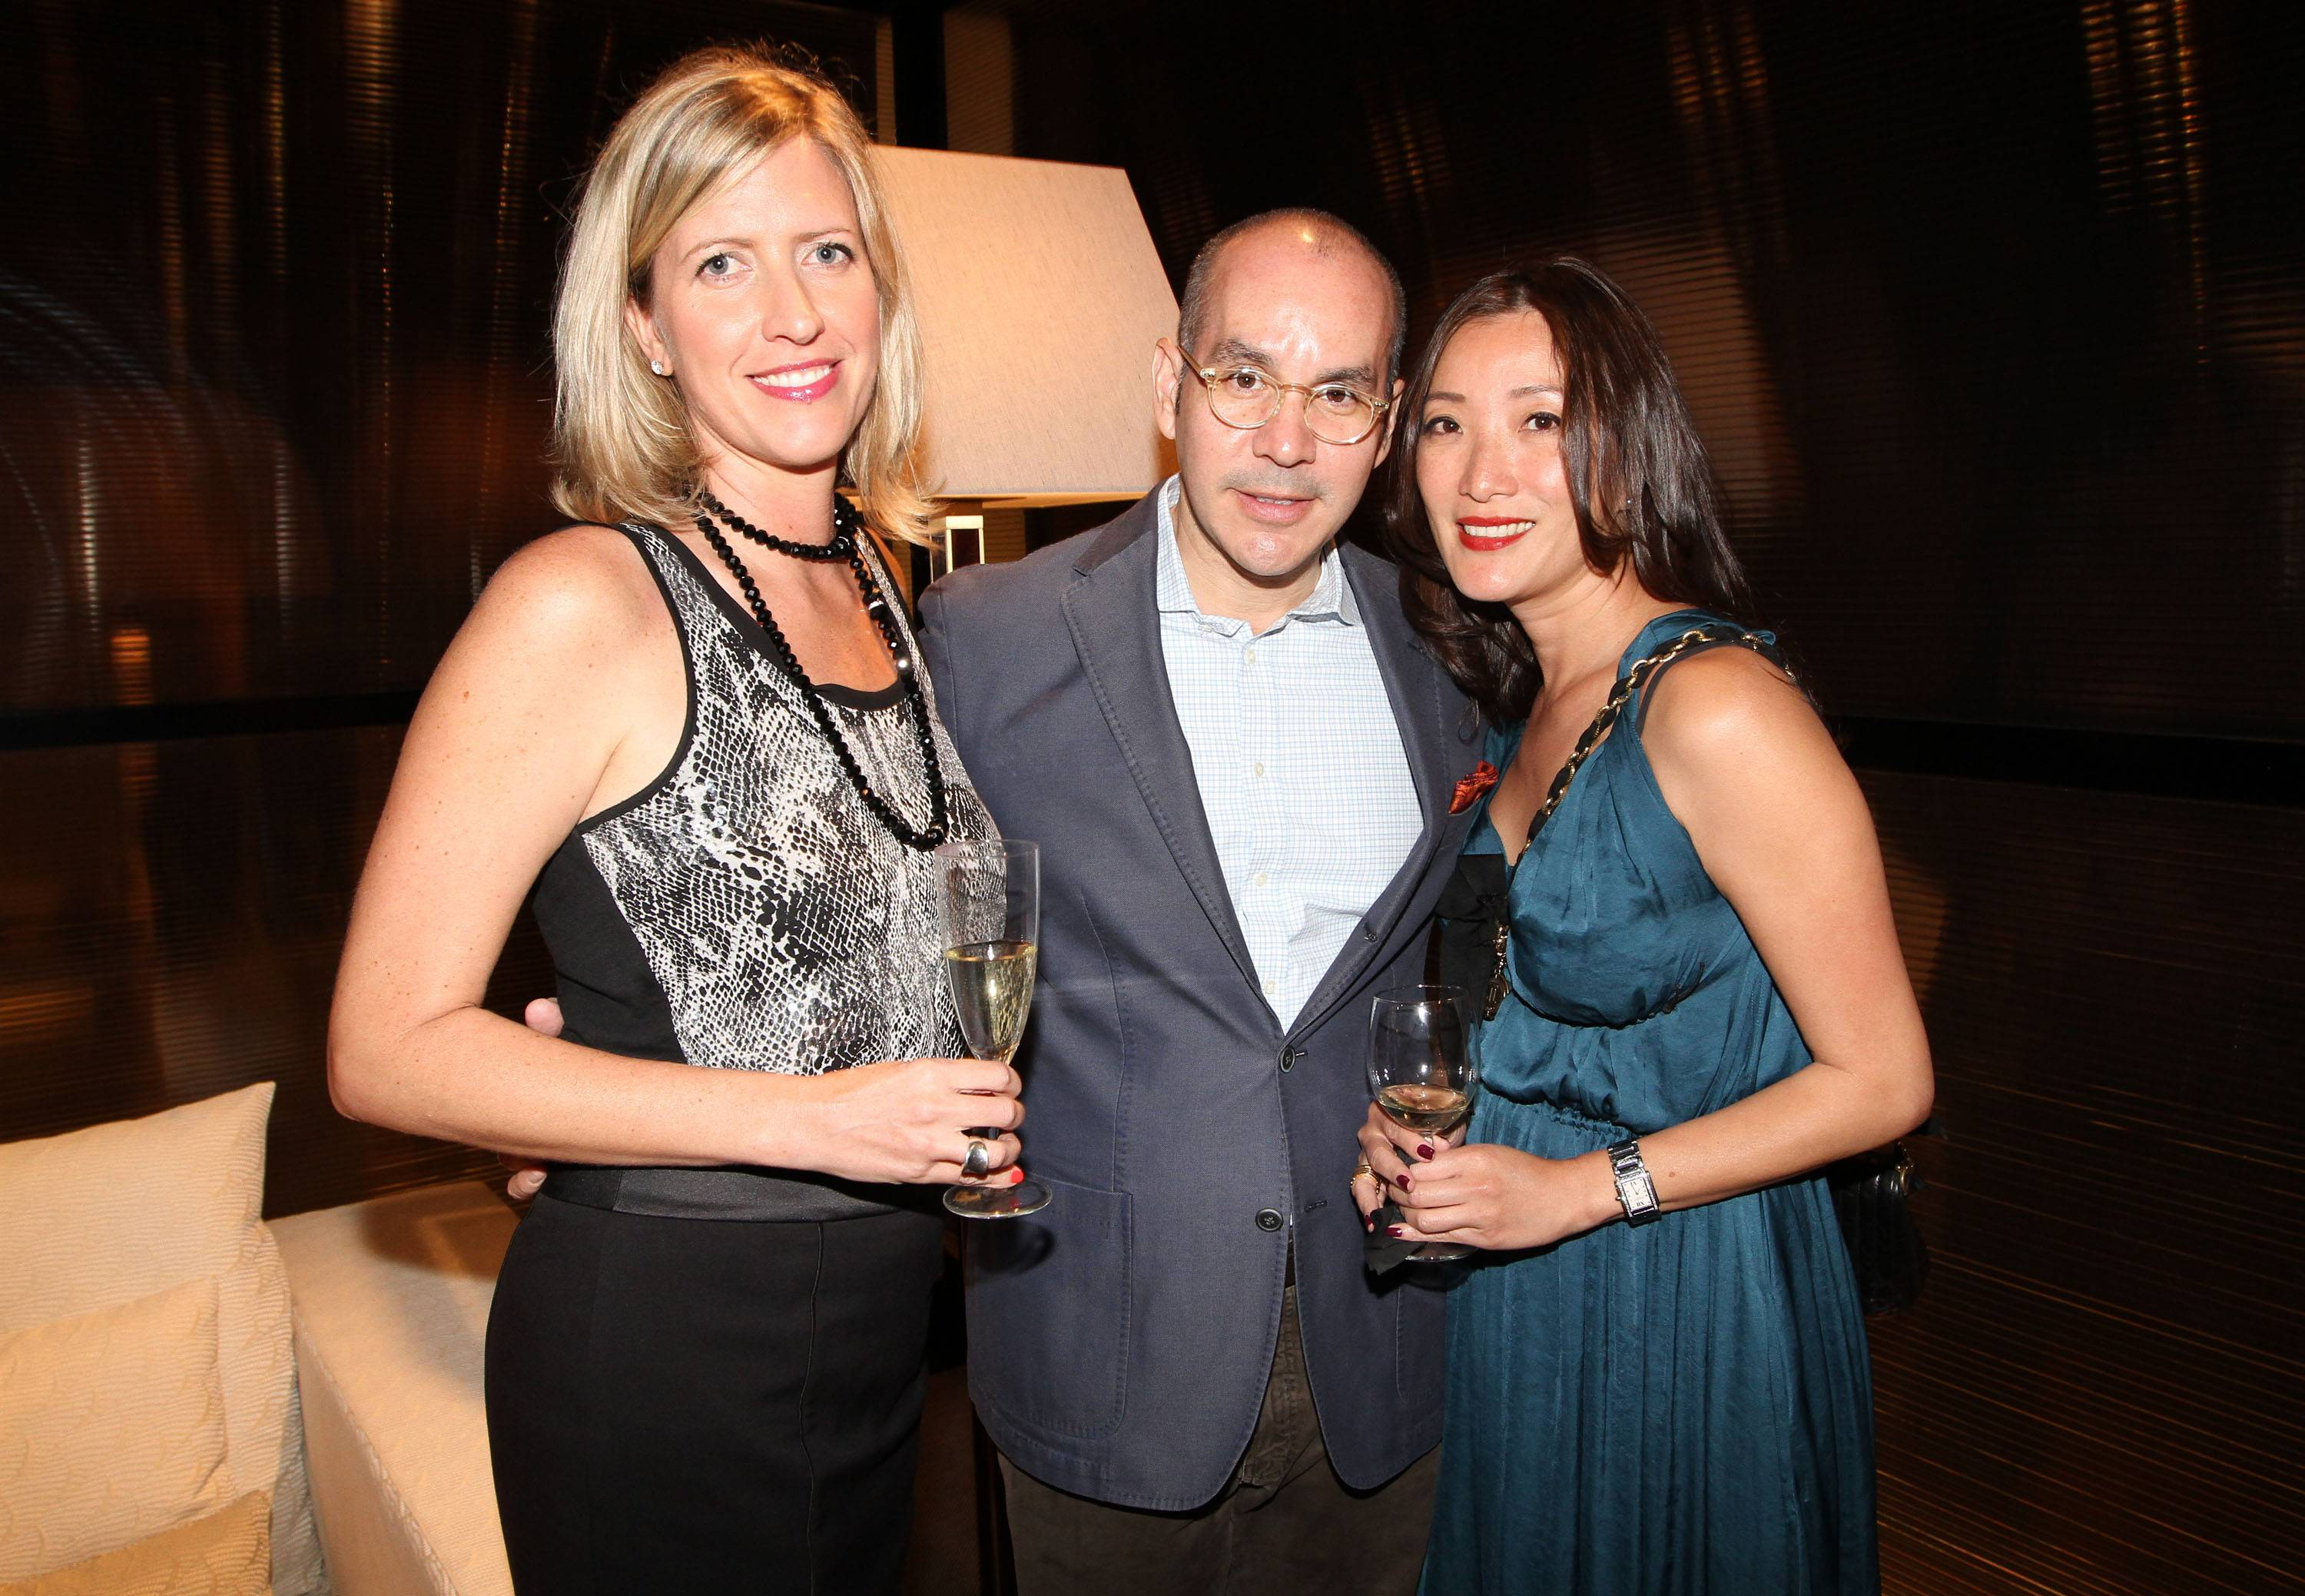 Chelsea Jennemyr, Juan Carlos Mayol and Susu Cheung